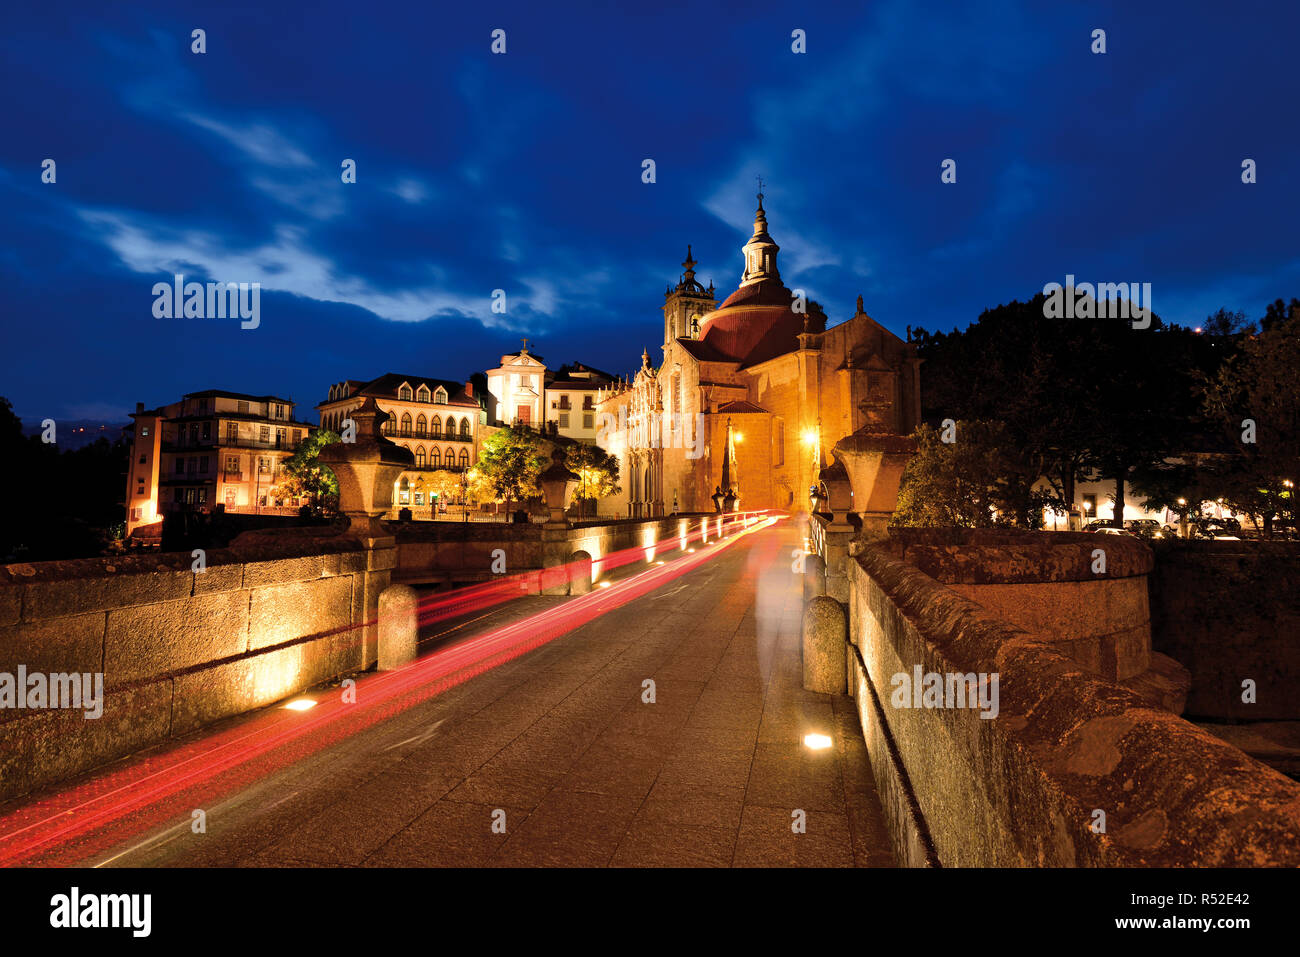 Nocturnal illuminated medieval bridge and convent at  blue hour - Stock Image